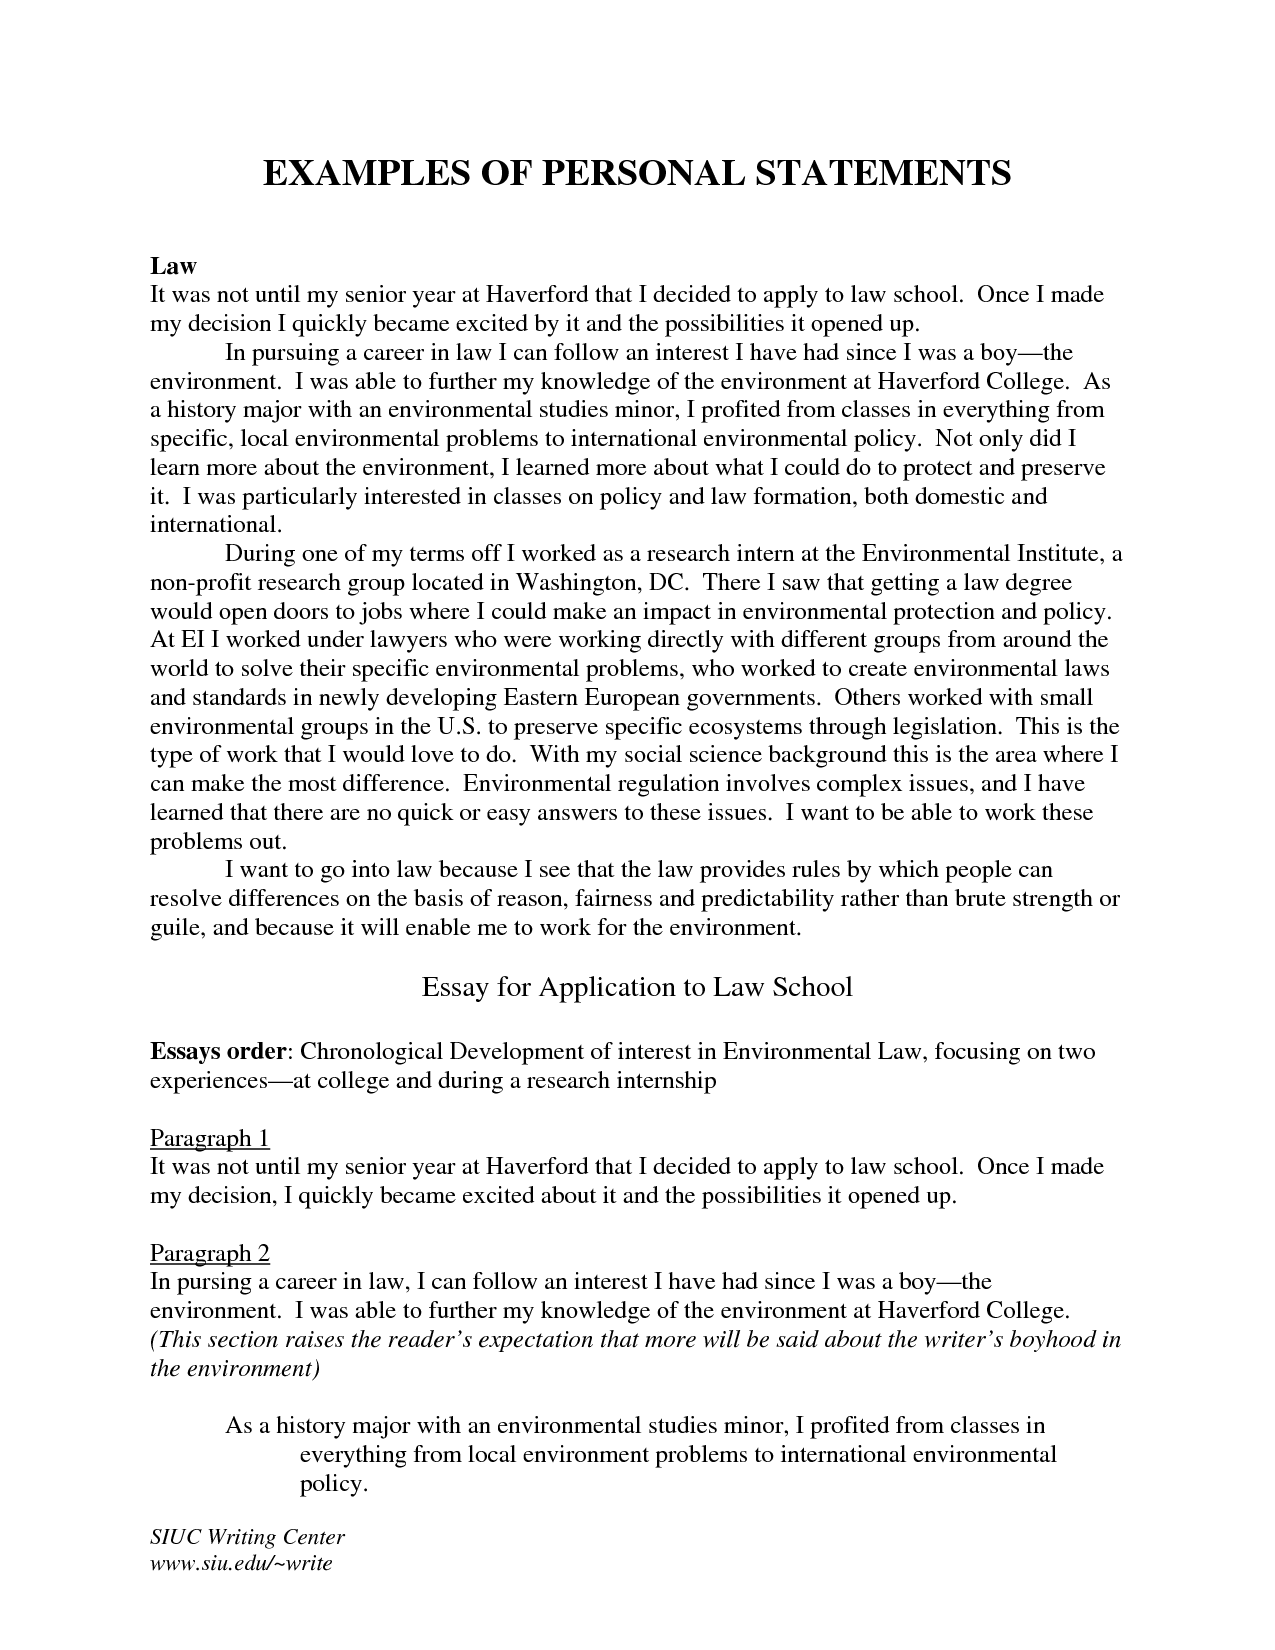 Grad school essays samples. Offers tips on writing a statement of ...